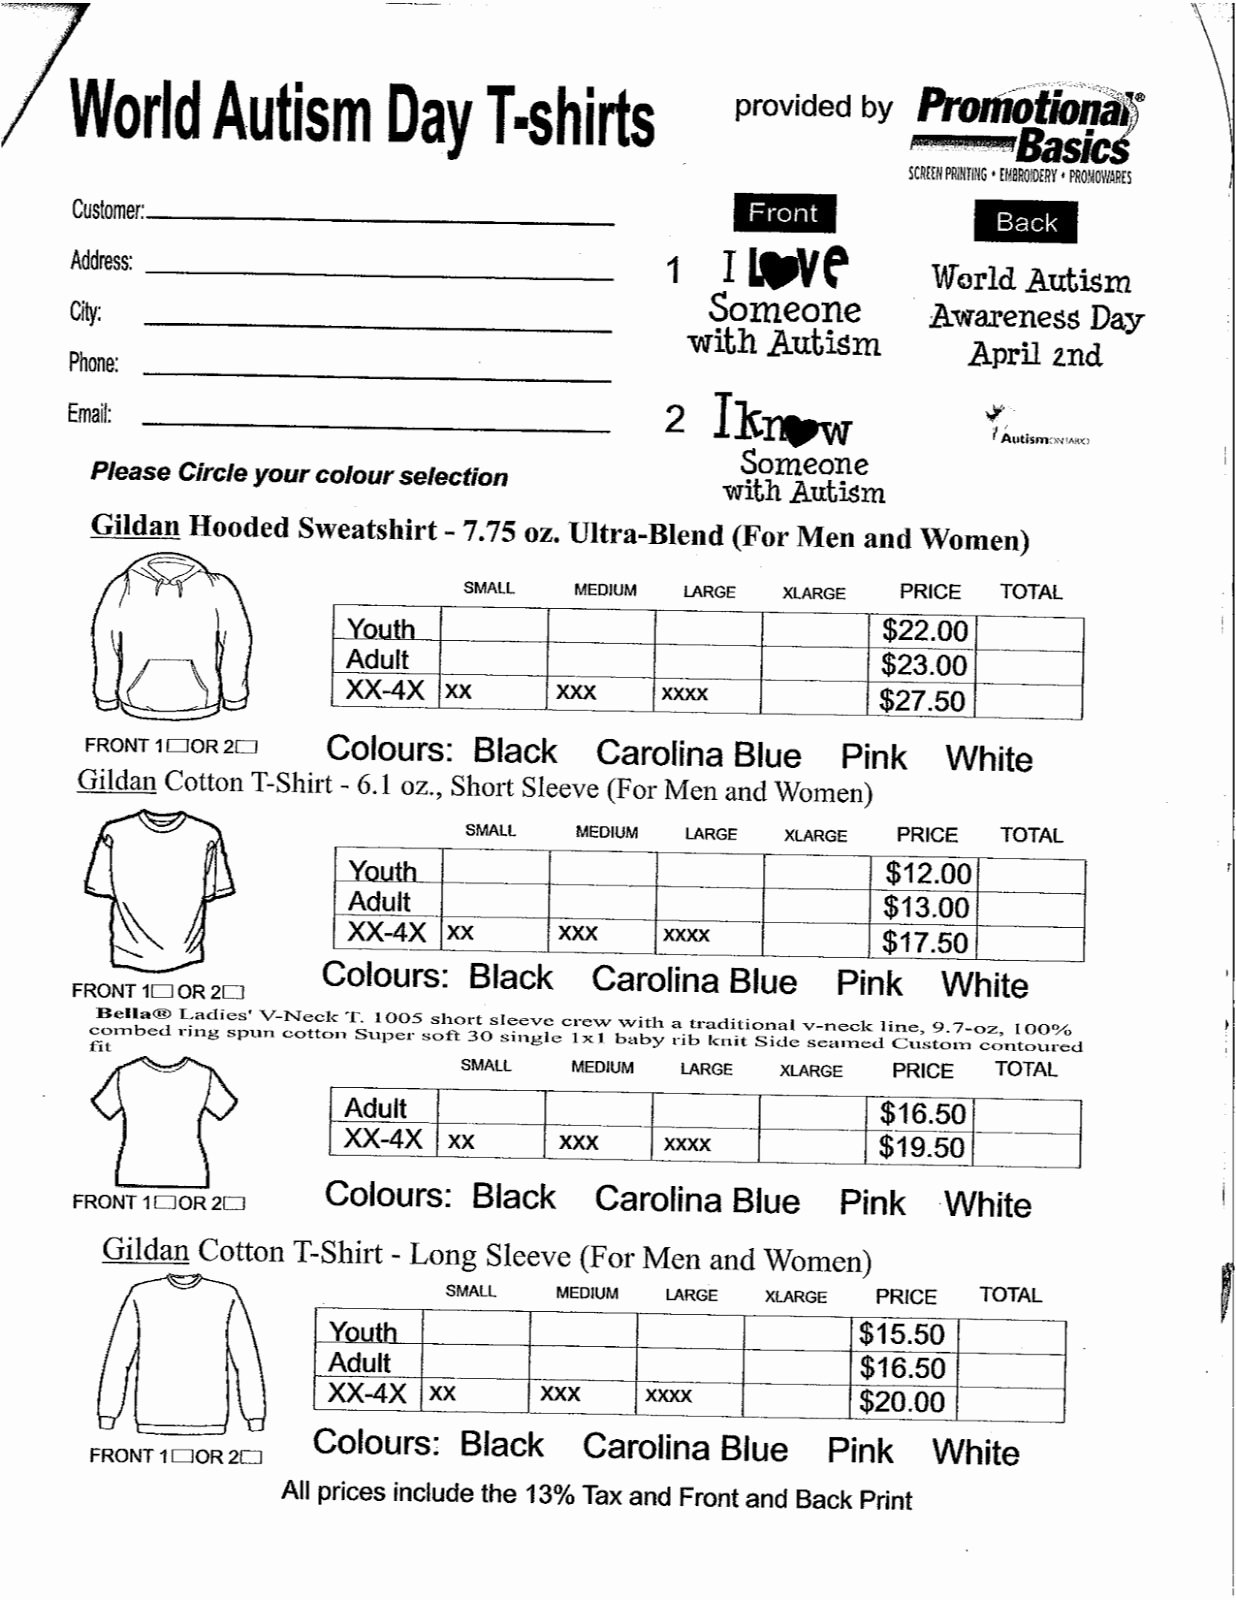 Shirt order form Template Awesome Spirit Wear form Pta Pinterest